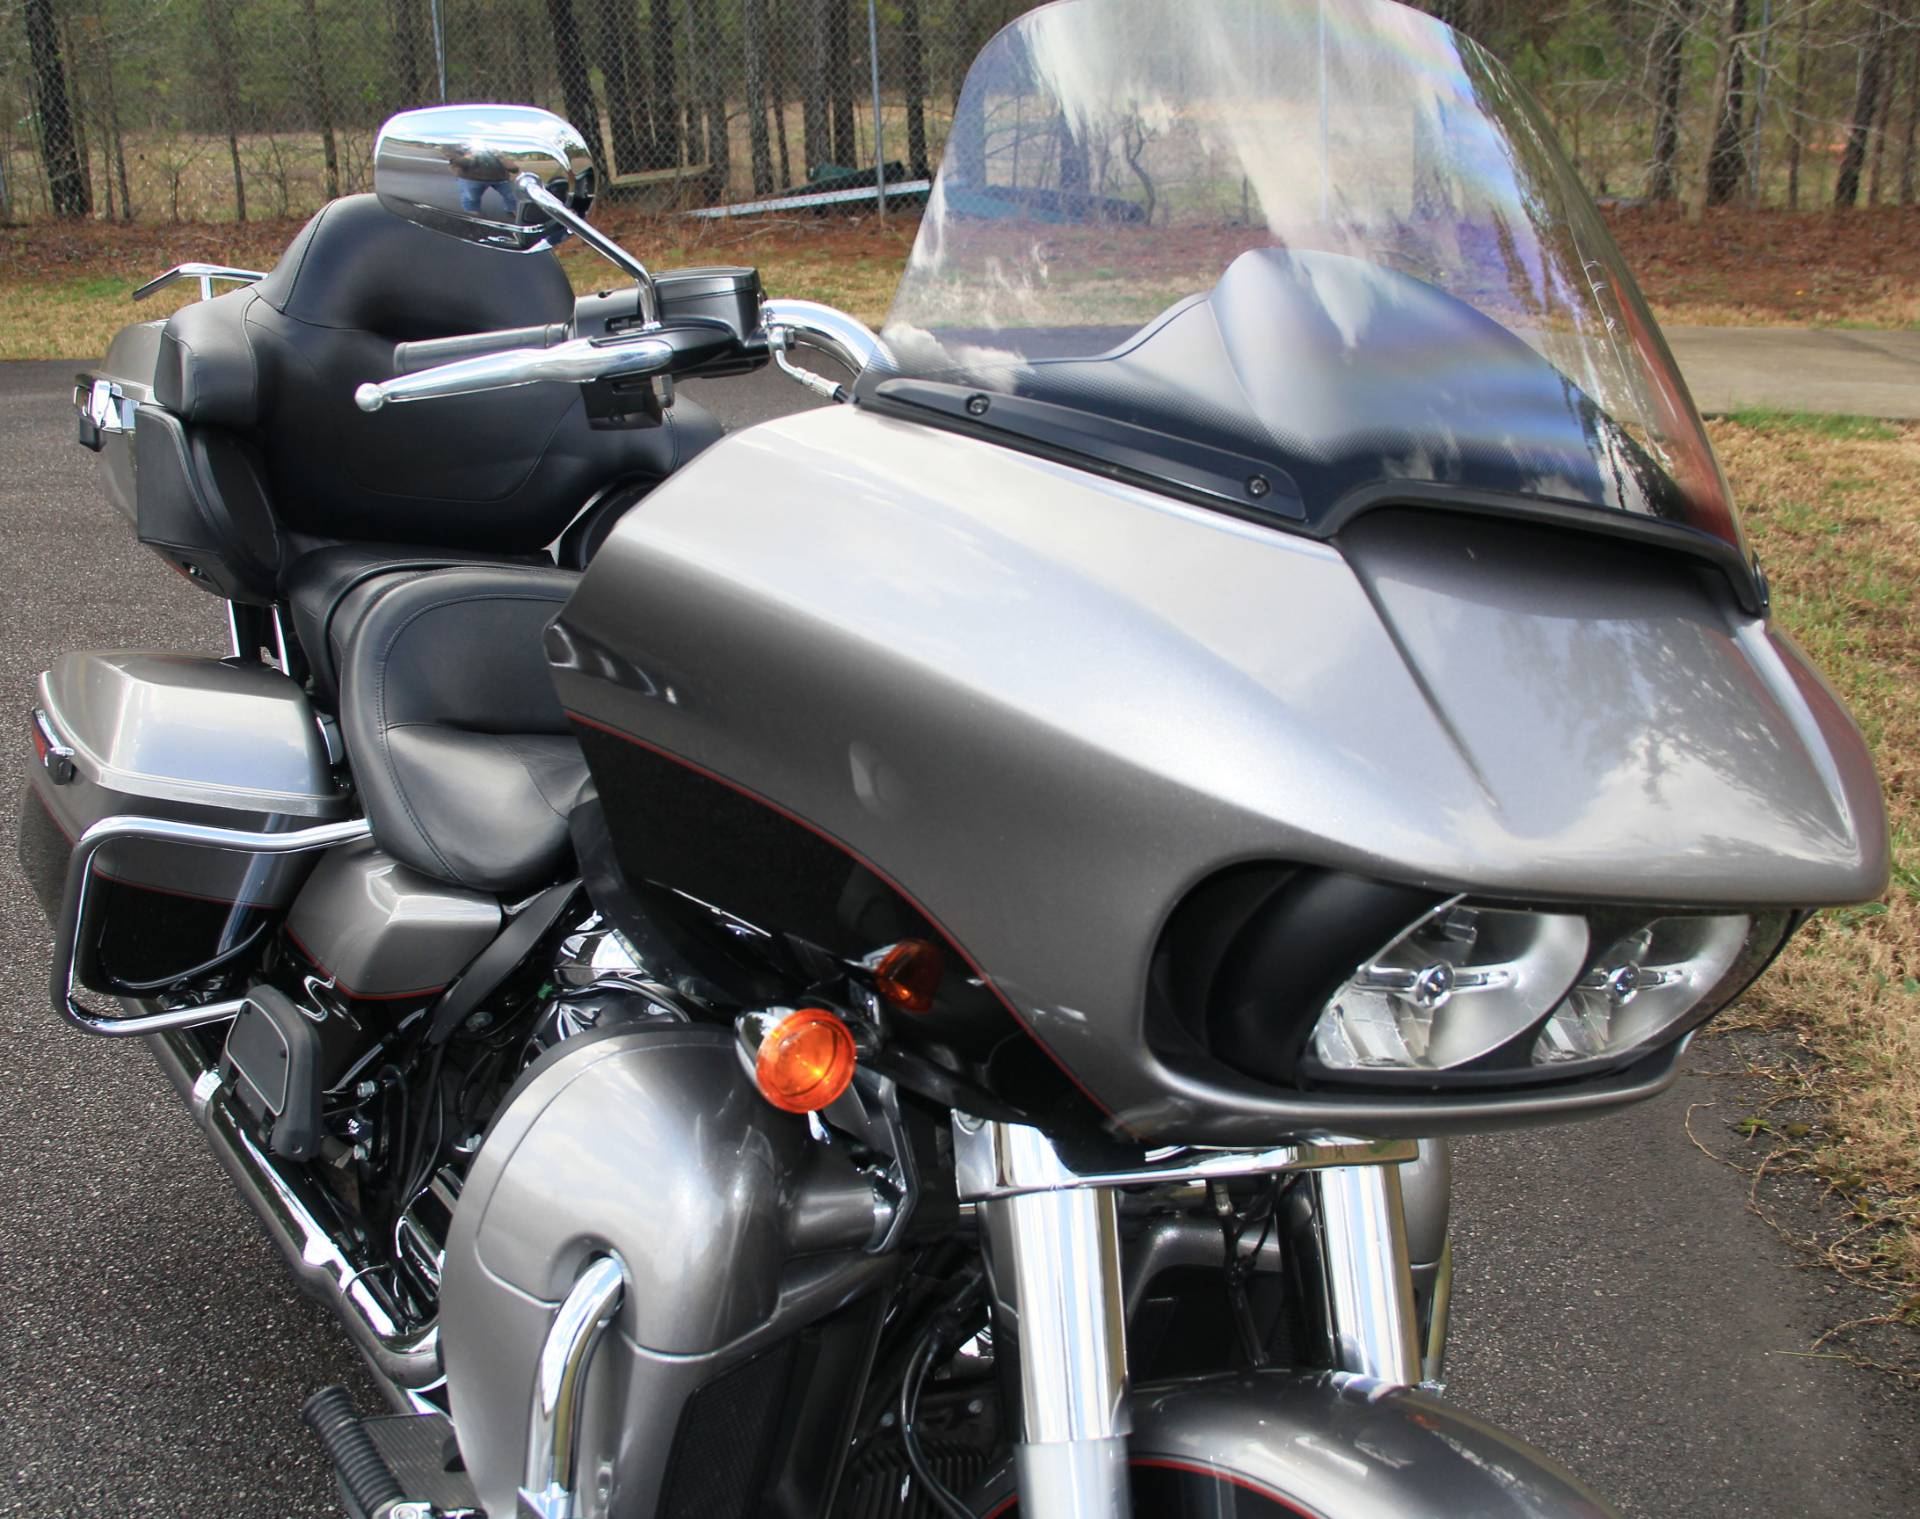 2017 Harley-Davidson Road Glide Ultra in Cartersville, Georgia - Photo 11